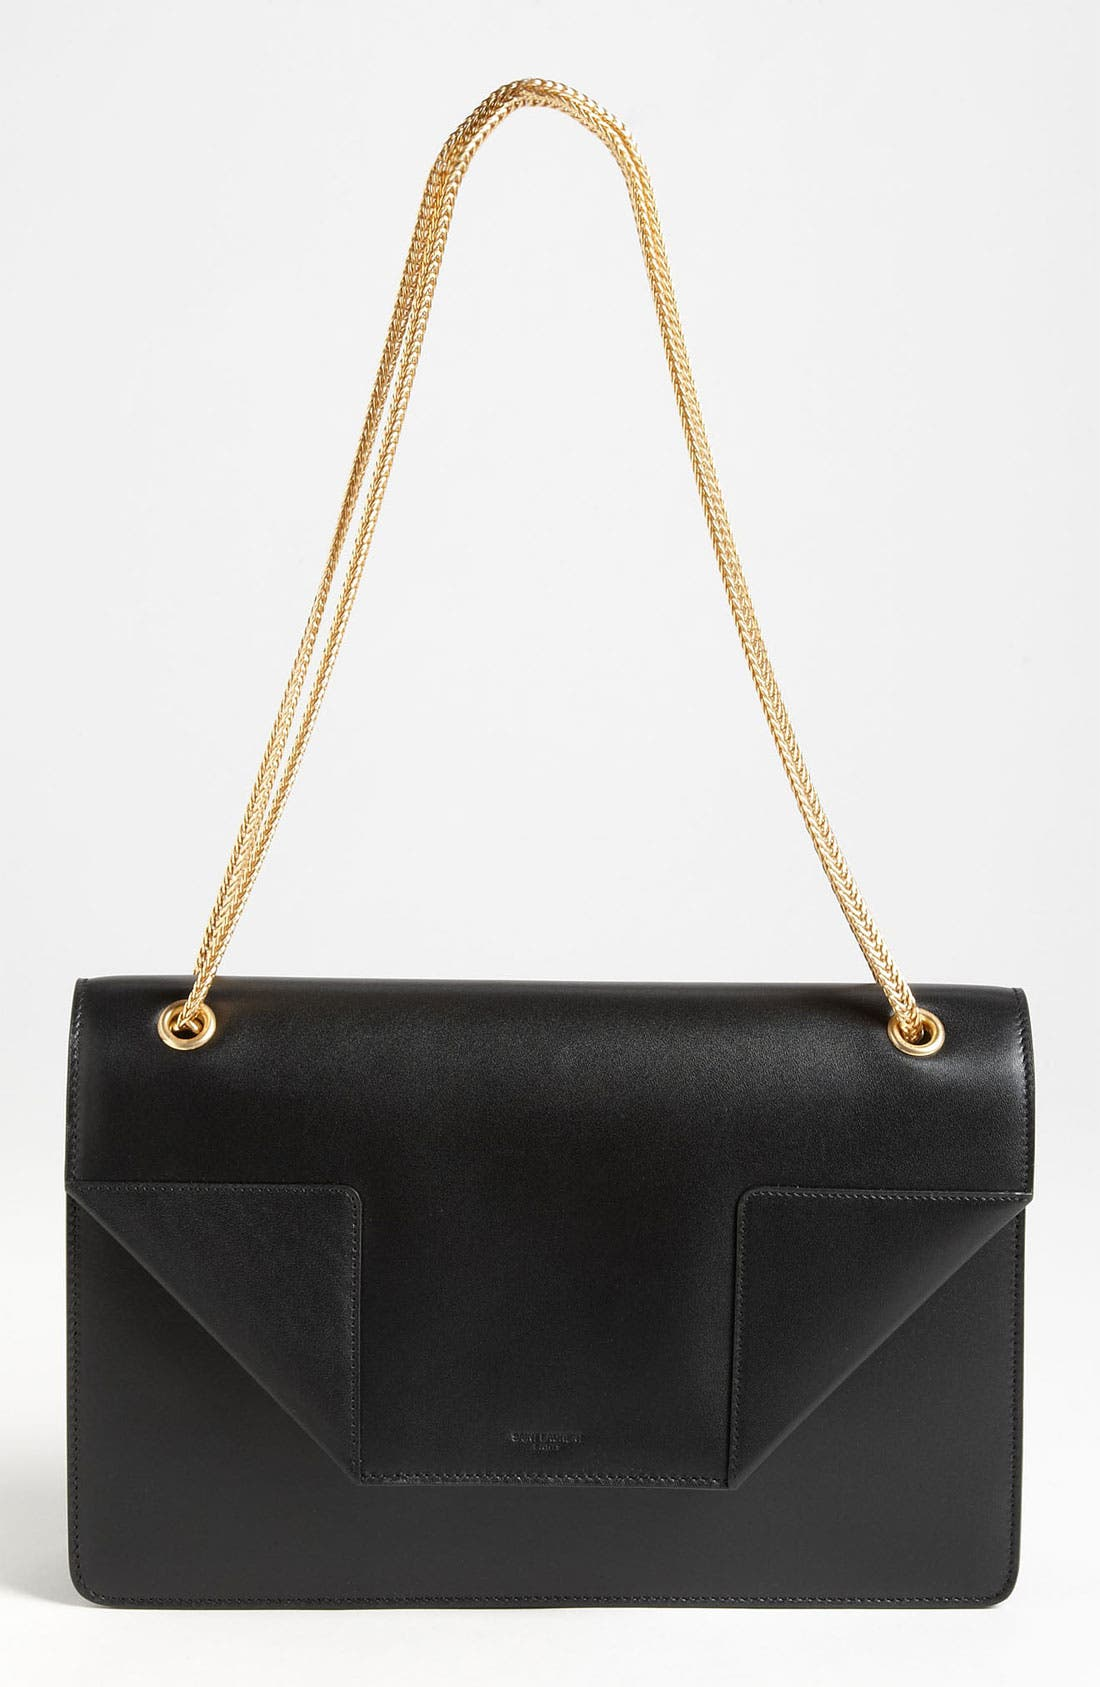 Main Image - Saint Laurent 'Betty - Medium' Leather Shoulder Bag